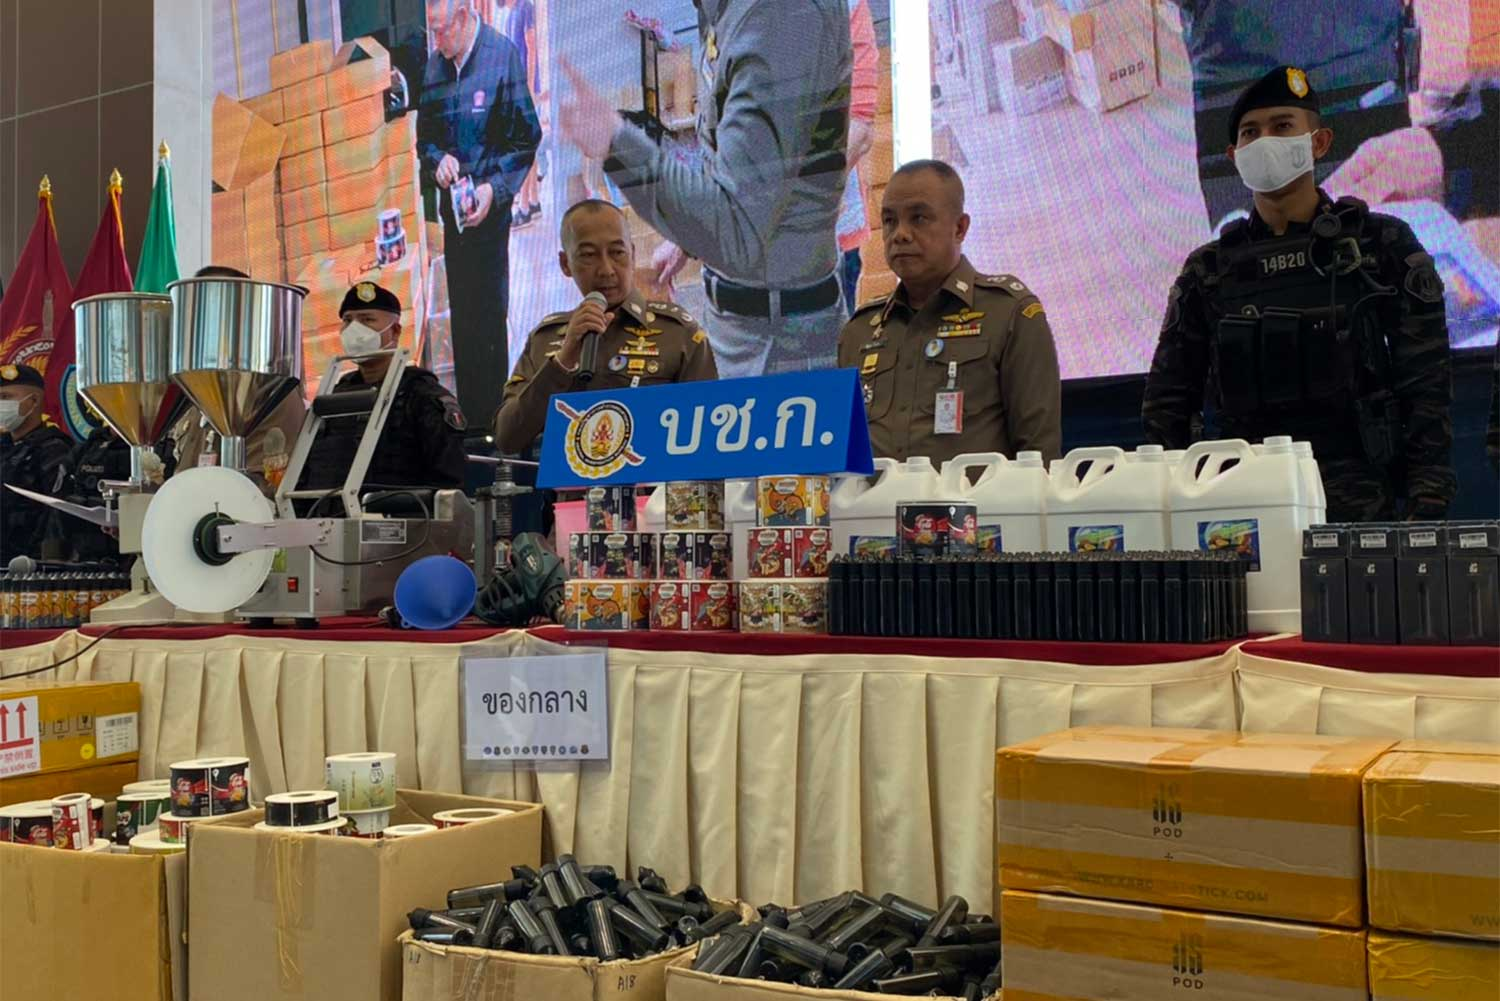 Pol Lt Gen Torsak Sukwimol, commissioner of the Central Investigation Bureau, discusses the seizure of an estimated 10 million baht worth of e-cigarettes and related products during a media briefing on Saturday. (Supplied photo via Wassayos Ngamkham)